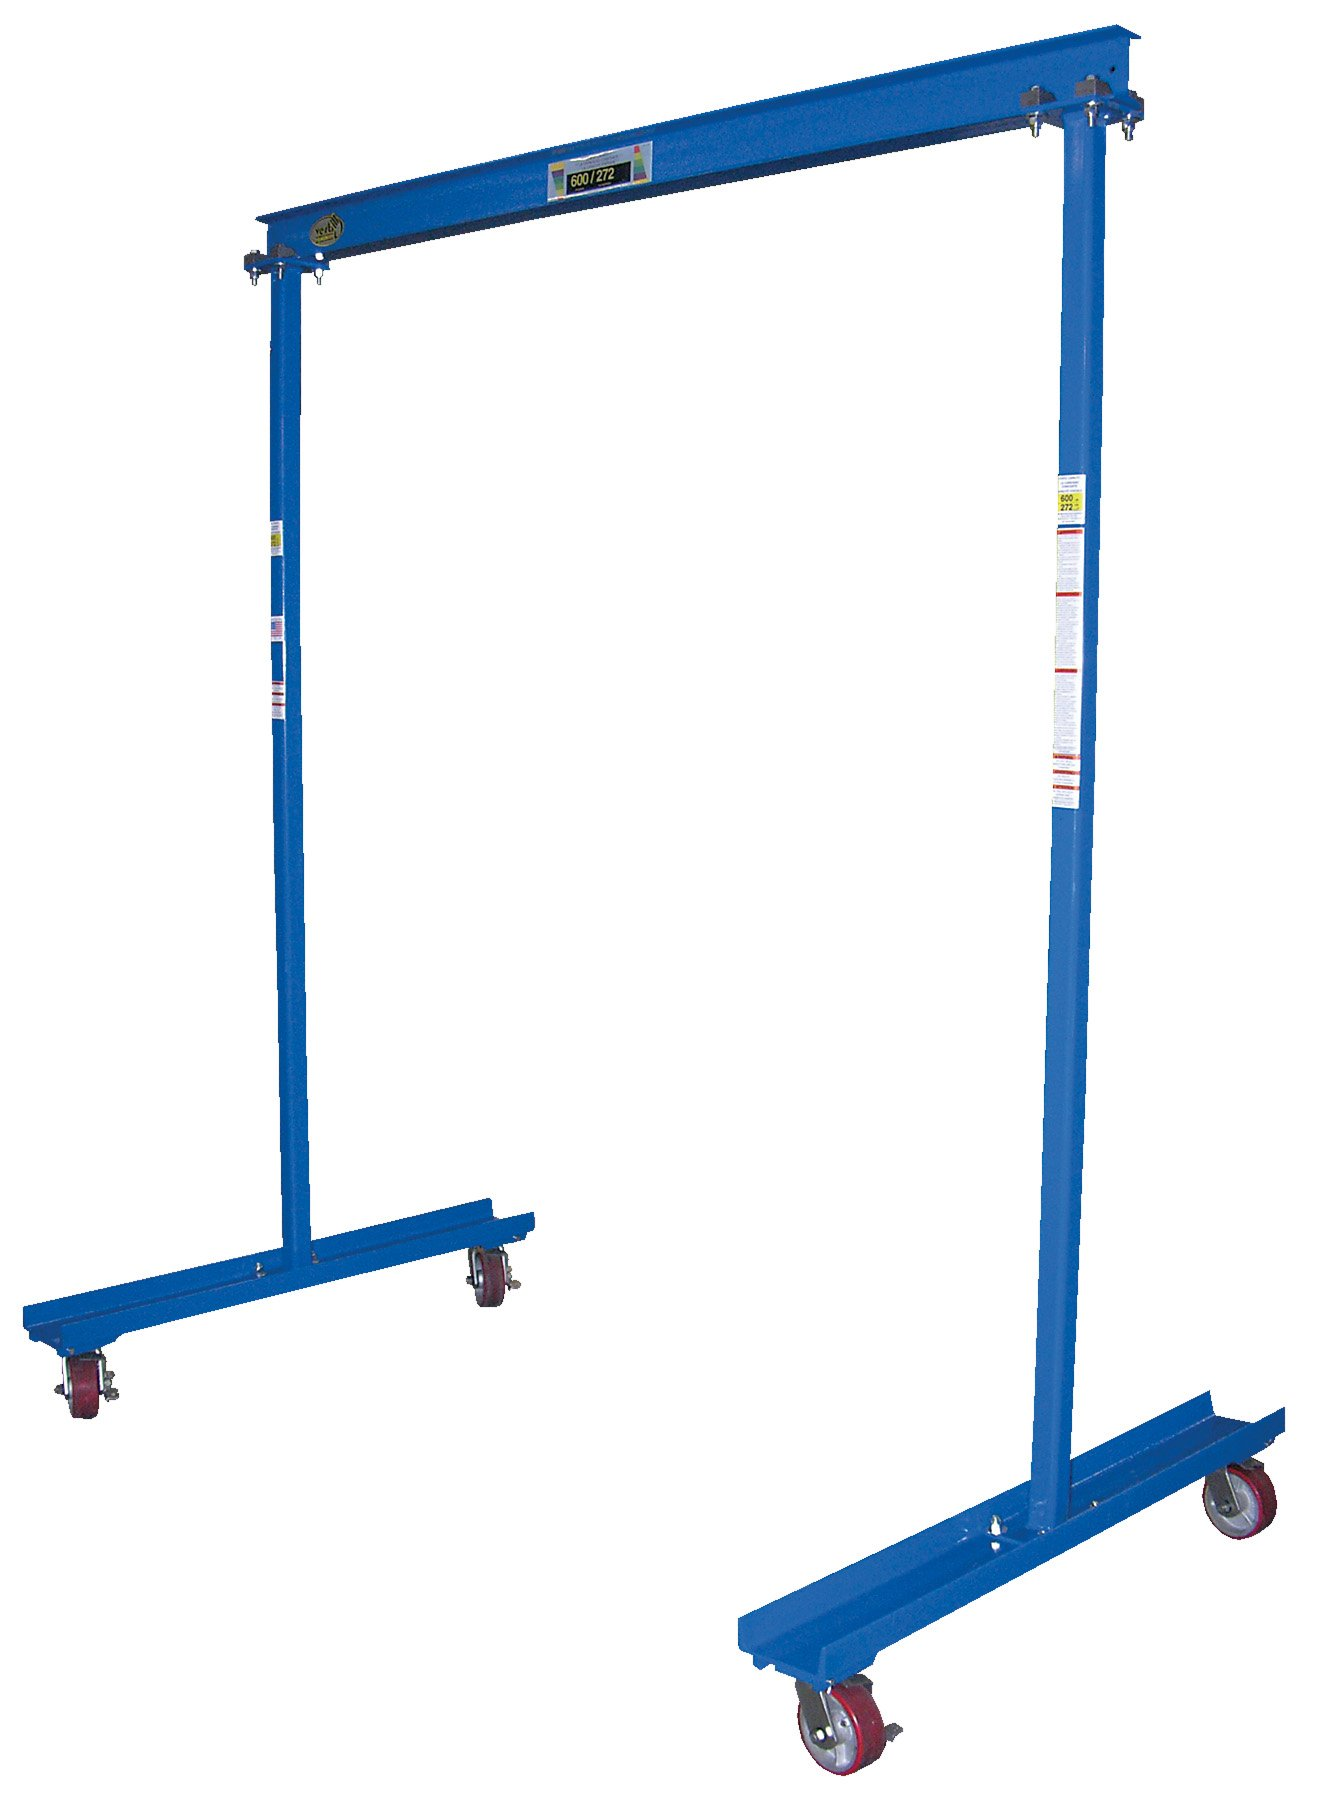 Vestil FPG-10 Work Area Portable Steel Gantry Crane, 1000 lbs Capacity